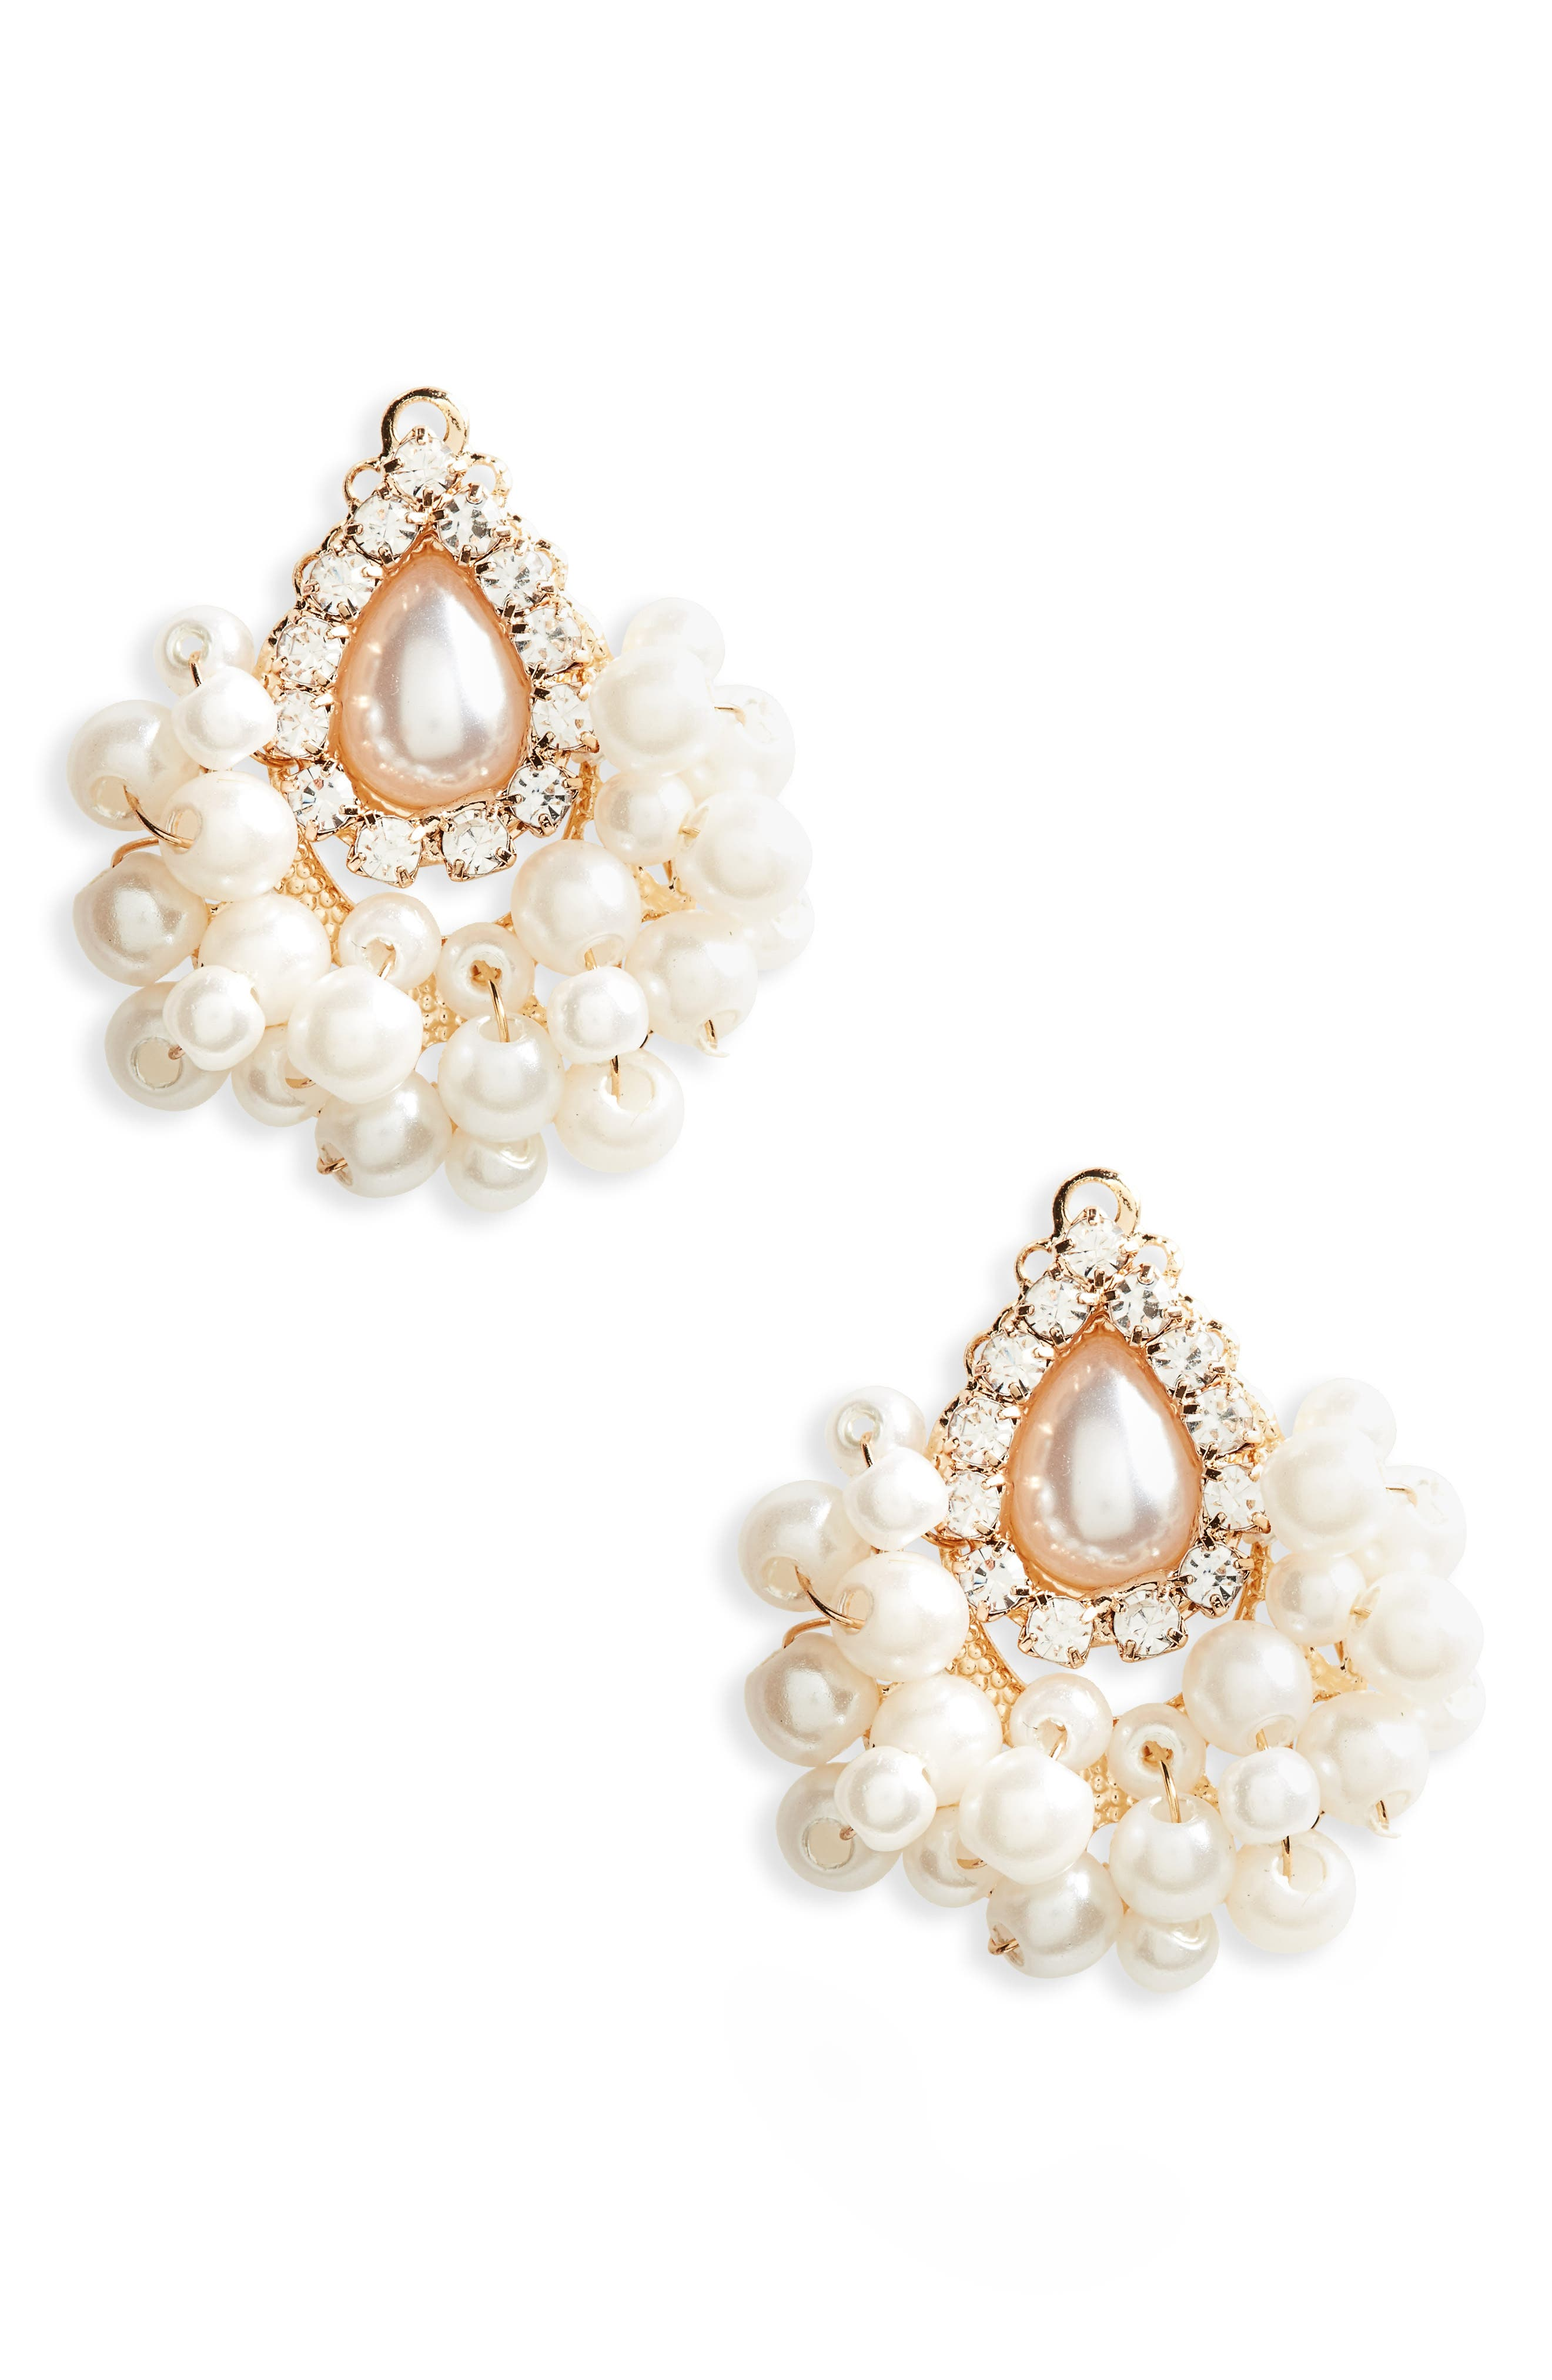 Imitation Pearl Cluster Earrings,                         Main,                         color, Gold/ White